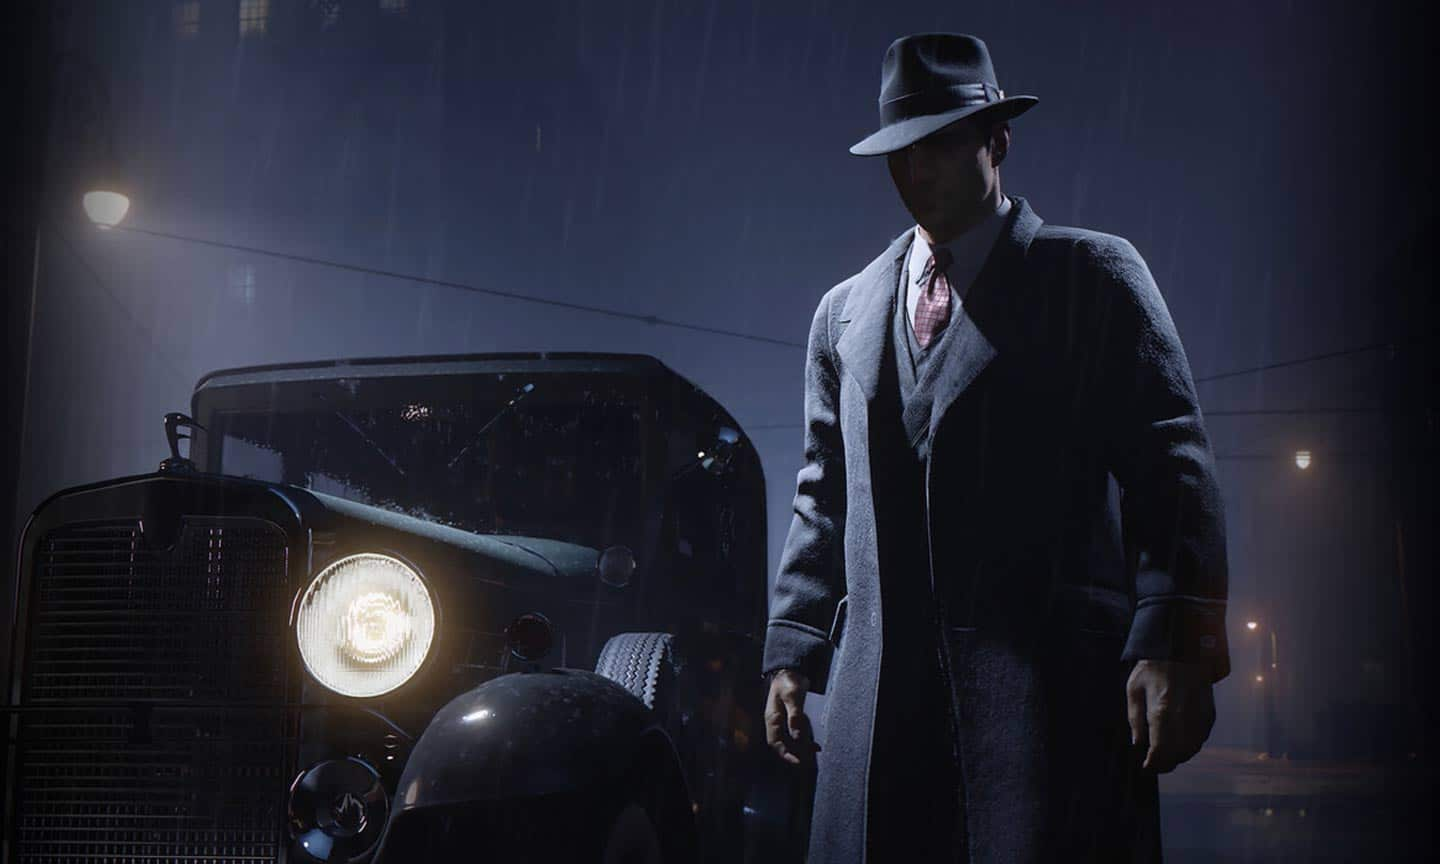 Mafia: Definitive Edition - (C) 2K Games, Hangar 13